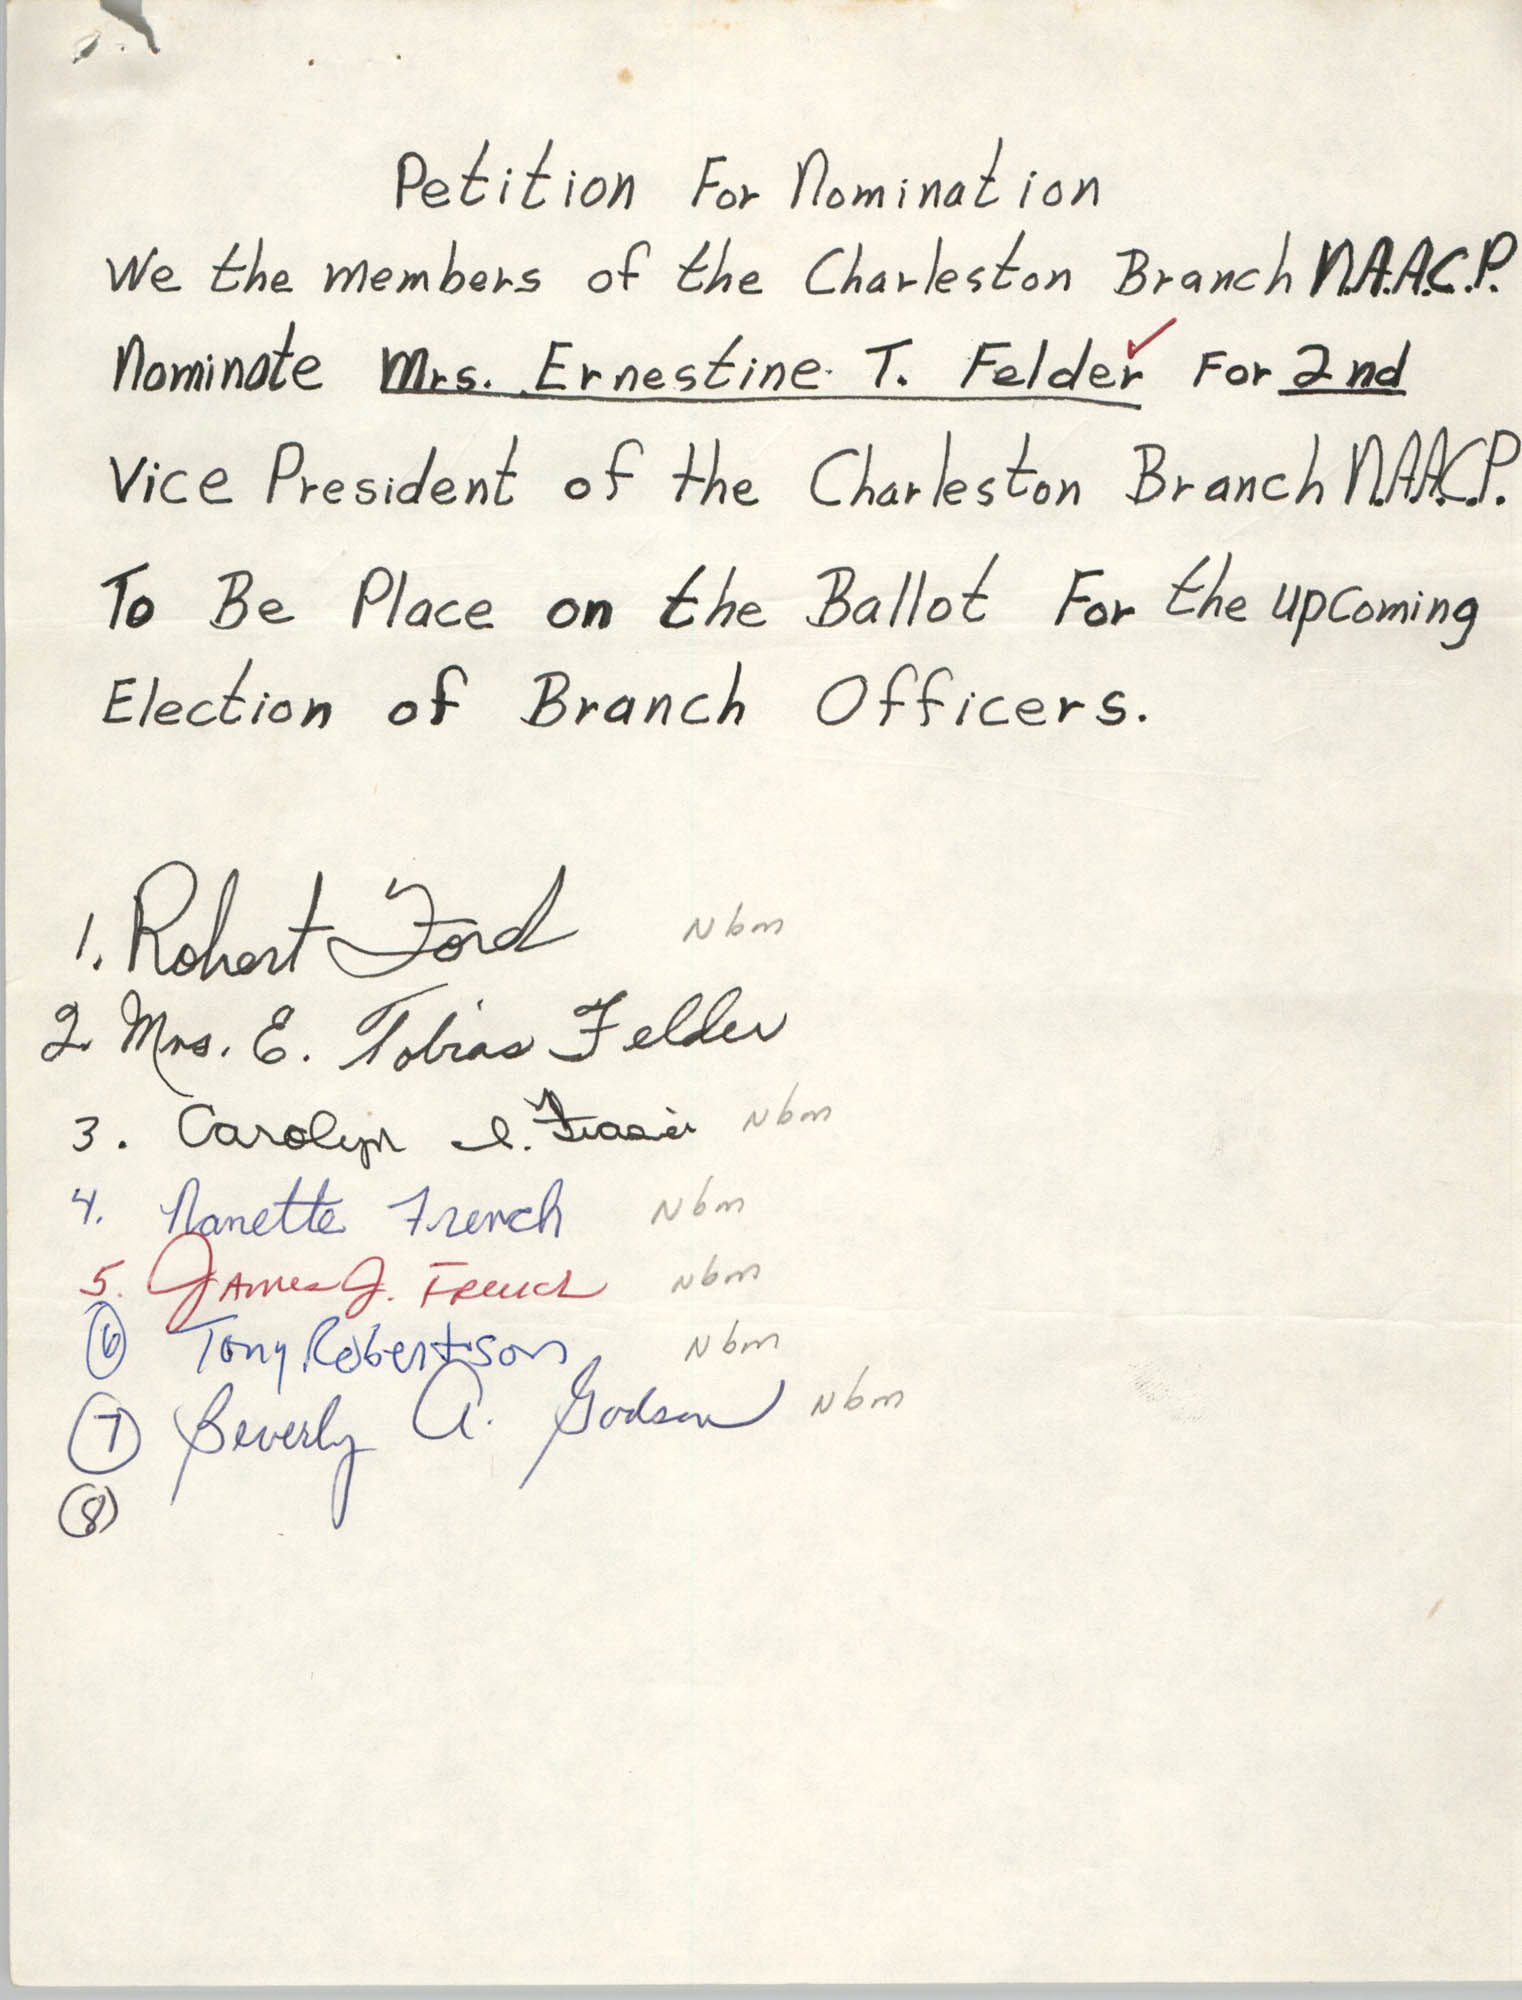 Charleston Branch of the NAACP Election Materials, Petition for Nomination 3